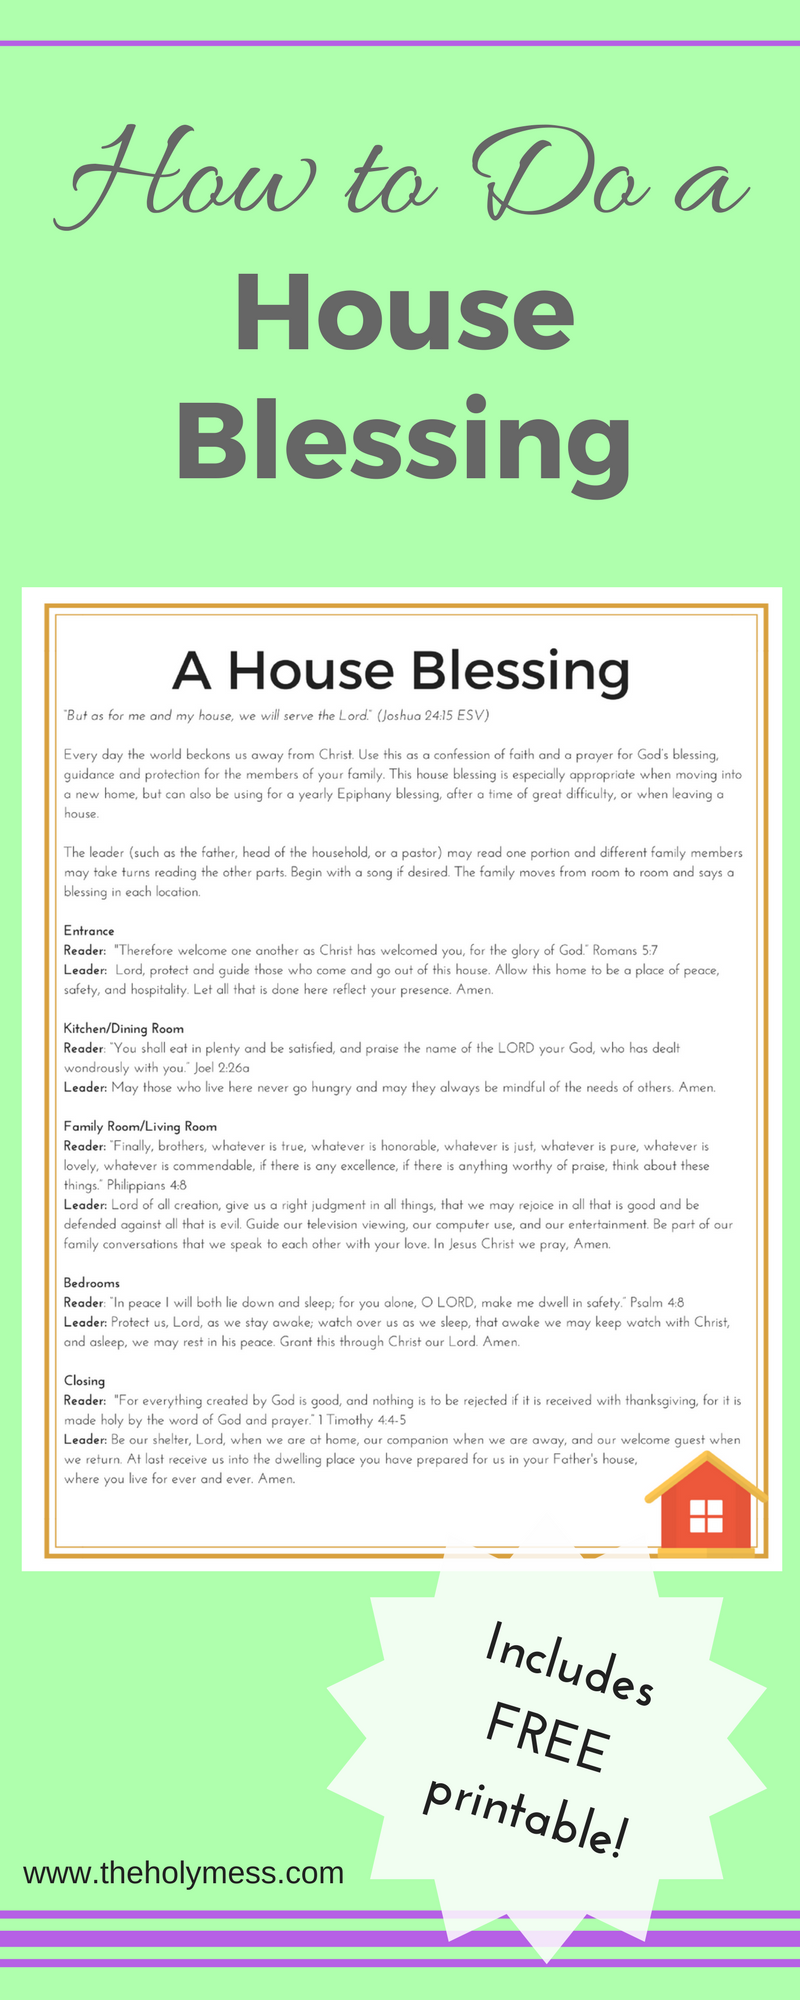 How To Do A House Blessing New Home Family Prayer Free Printable Baby